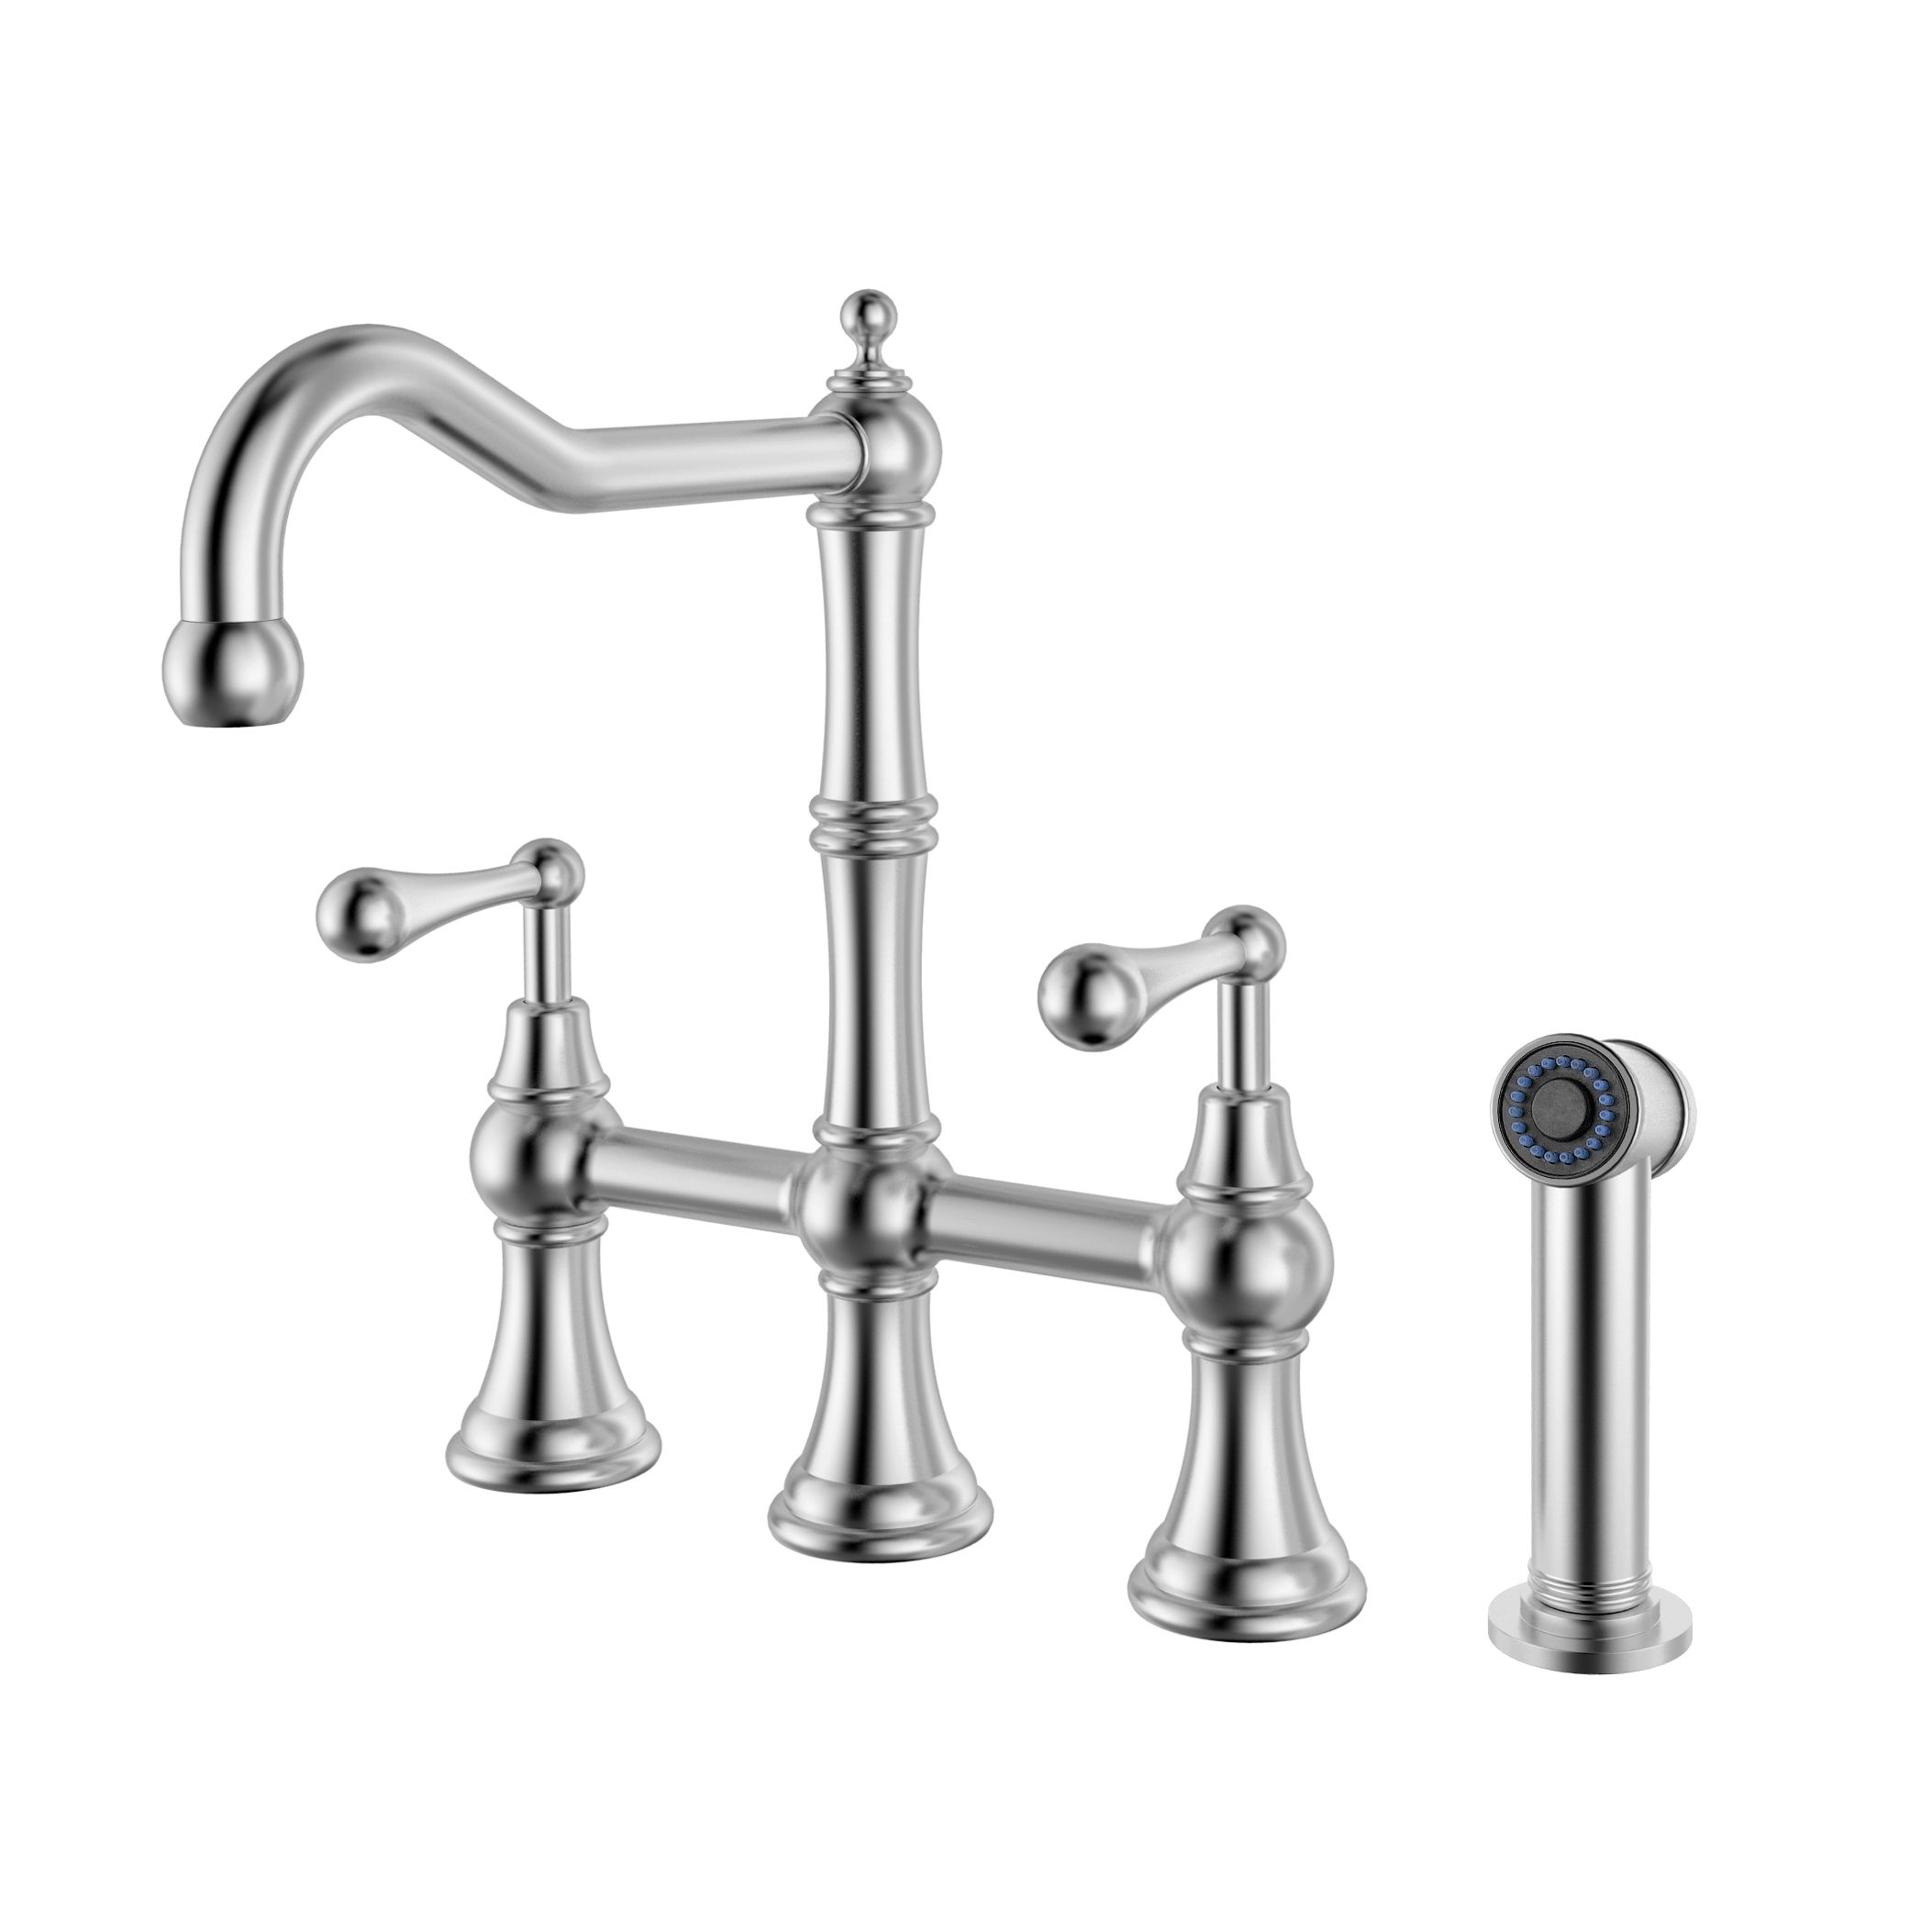 antique sink this copper or farmhouse faucet bar adds faucets bridge kitchen a ideal pin for